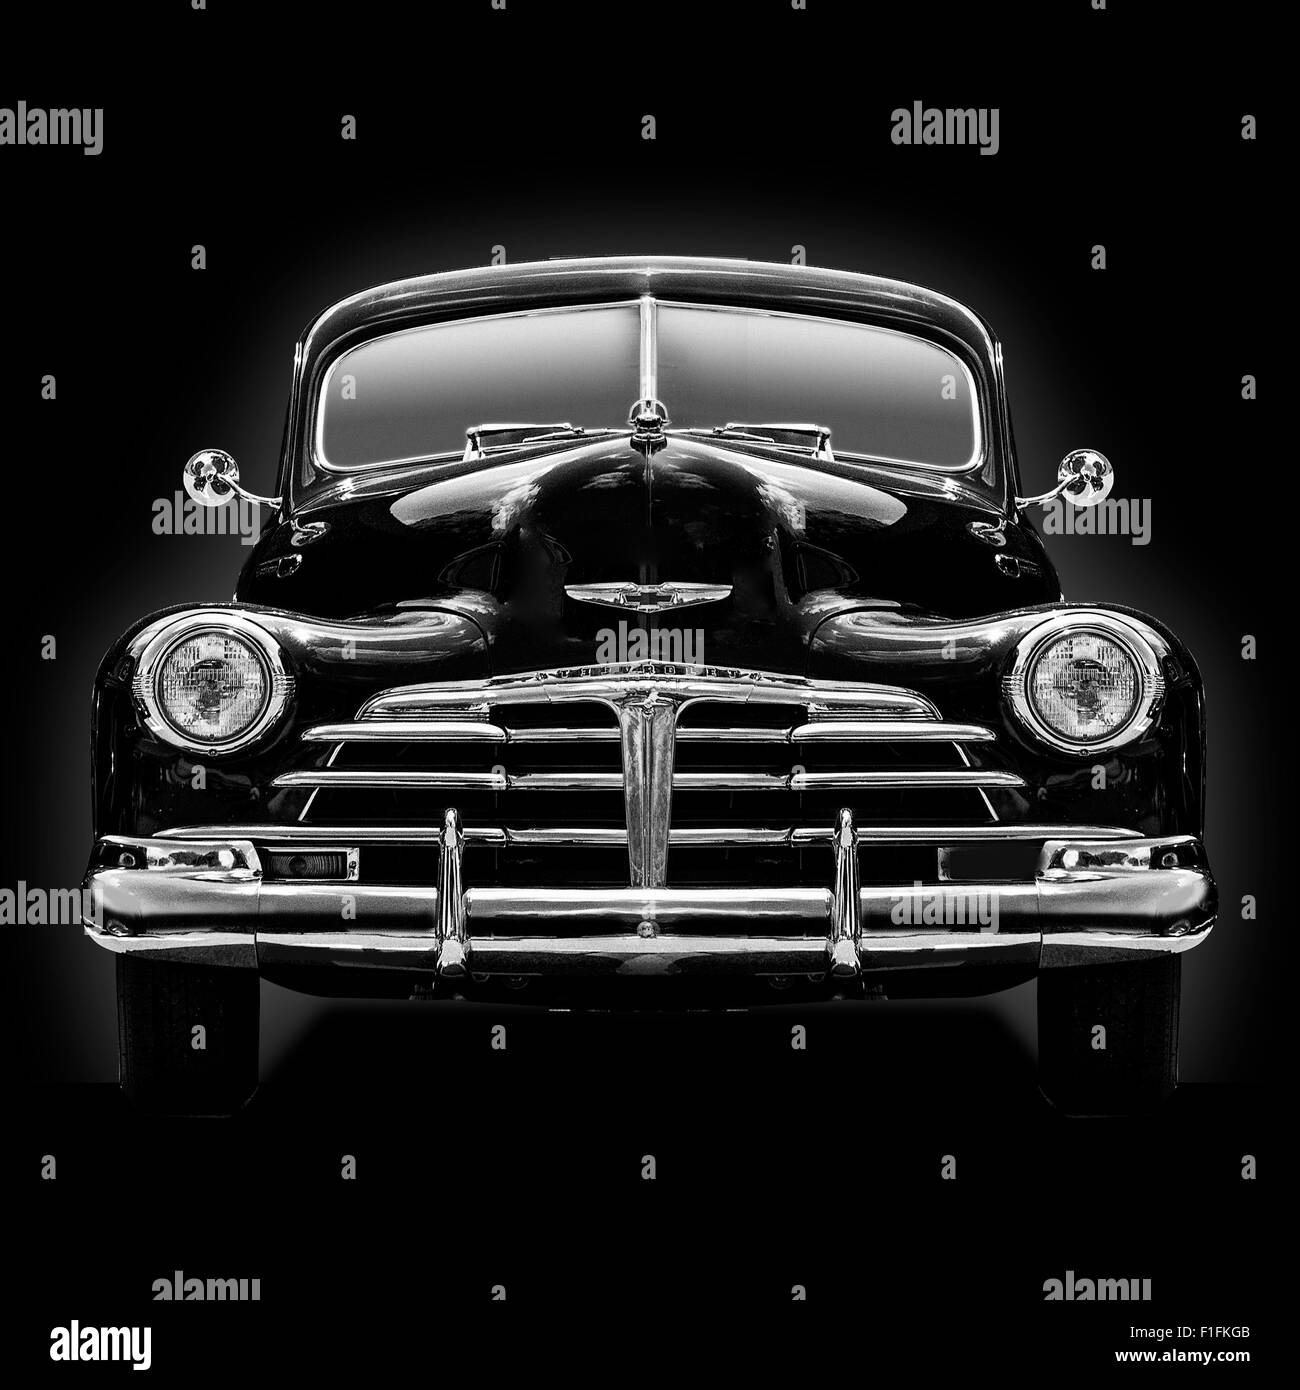 A b&w head on view of a 1950 Chevrolet Coupe knocked out on a black background square format image. Stock Photo